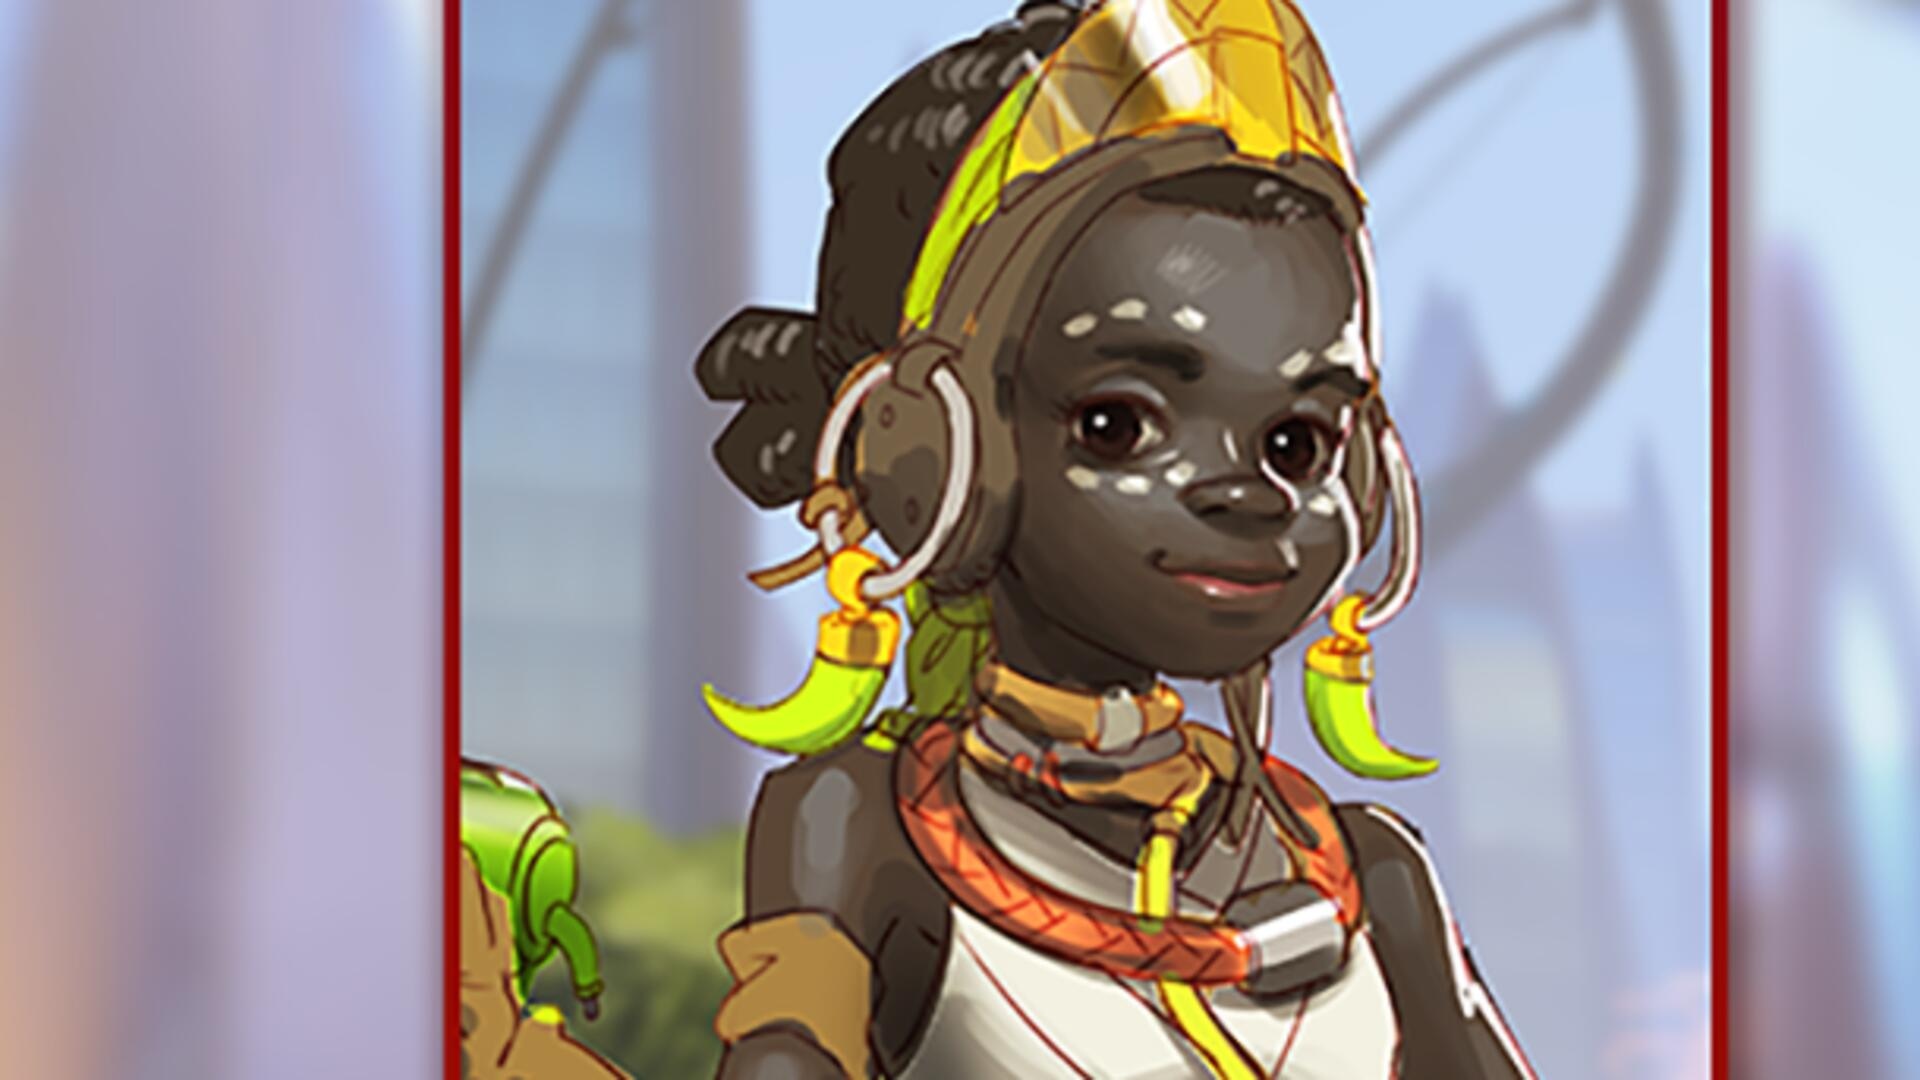 Did Blizzard Just Tease The Next Overwatch Hero?